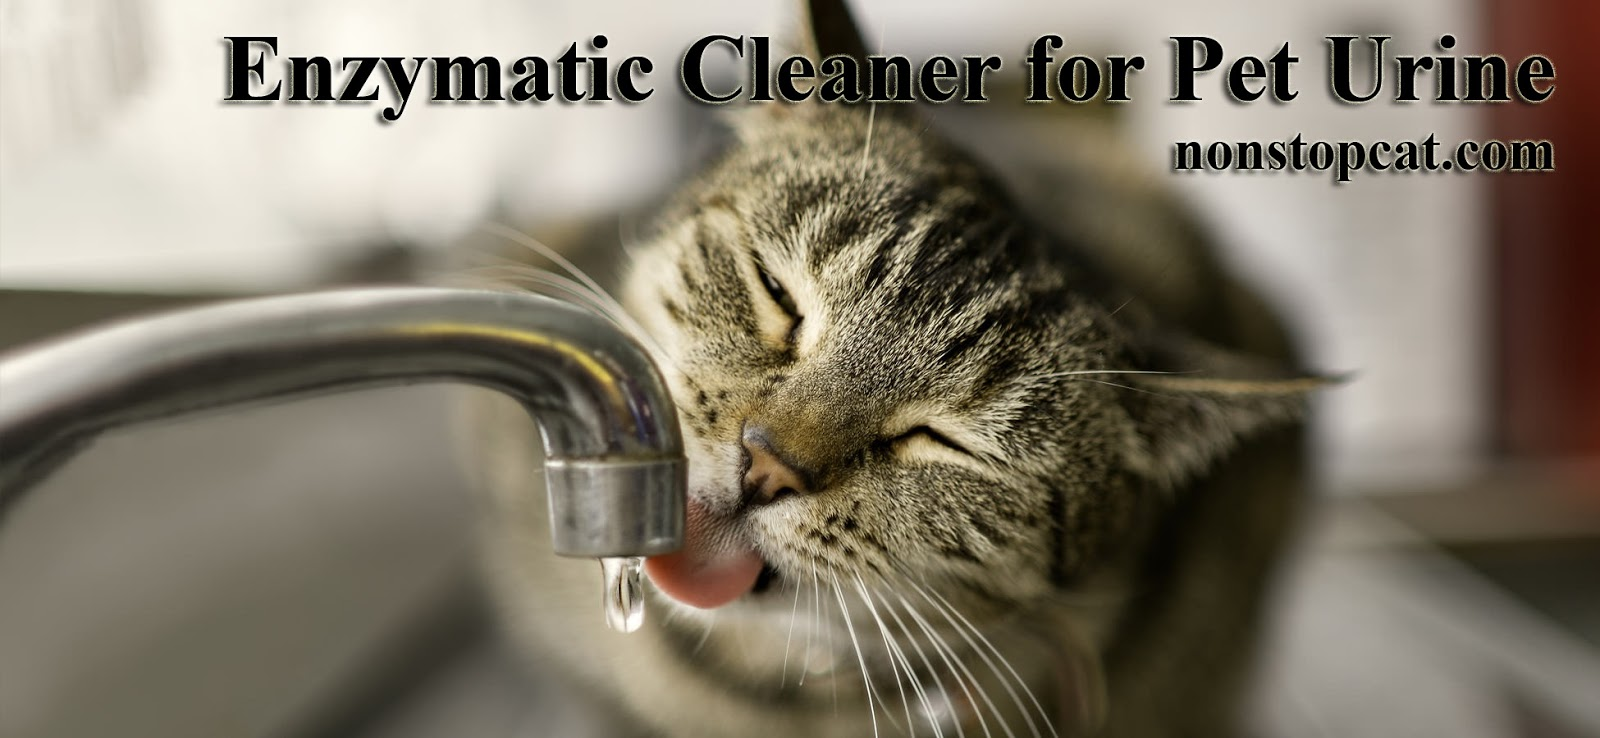 Enzymatic Cleaner for Pet Urine